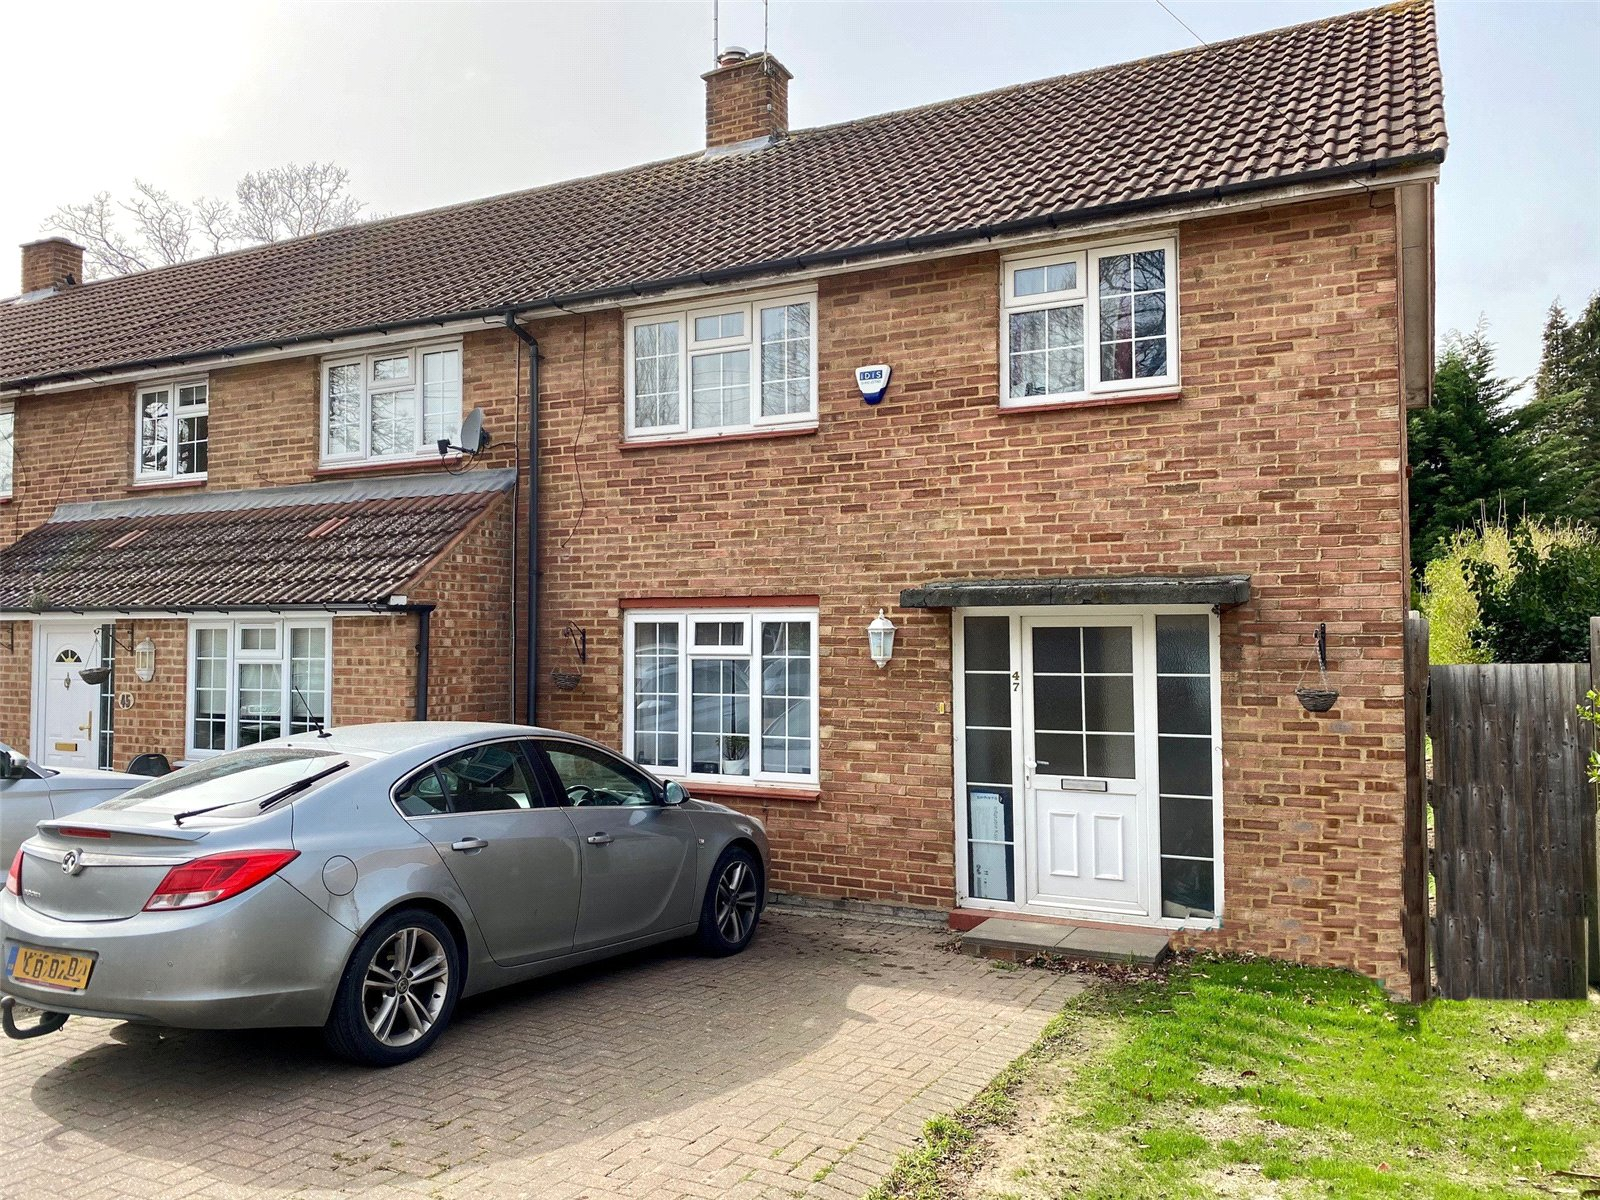 3 bed  to rent in Hunters Ride, Bricket Wood, AL2